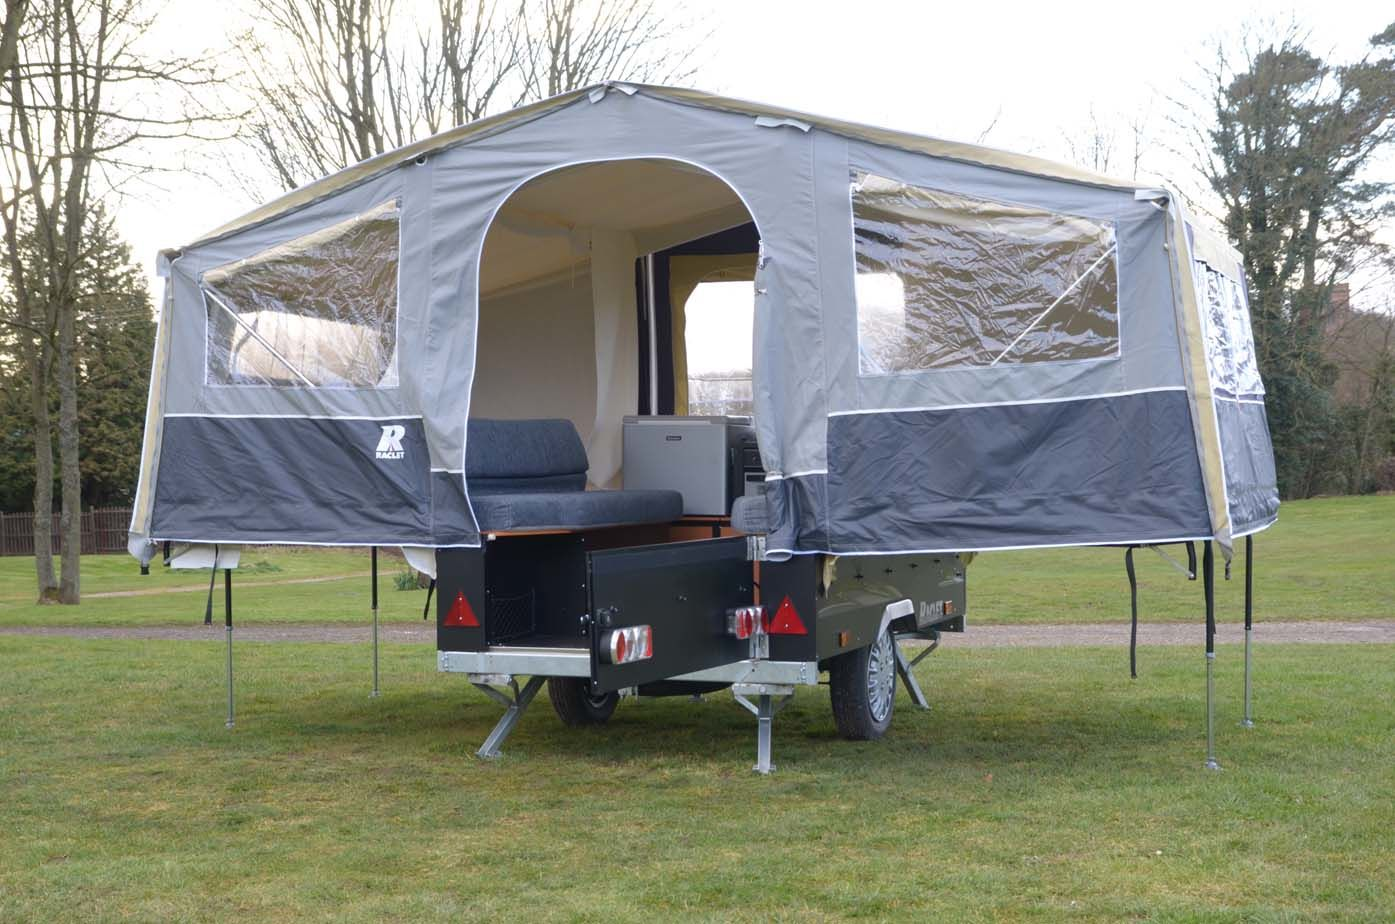 Trailer Tent Insurance explained & Trailer Tent Insurance - The Camping and Caravanning Club